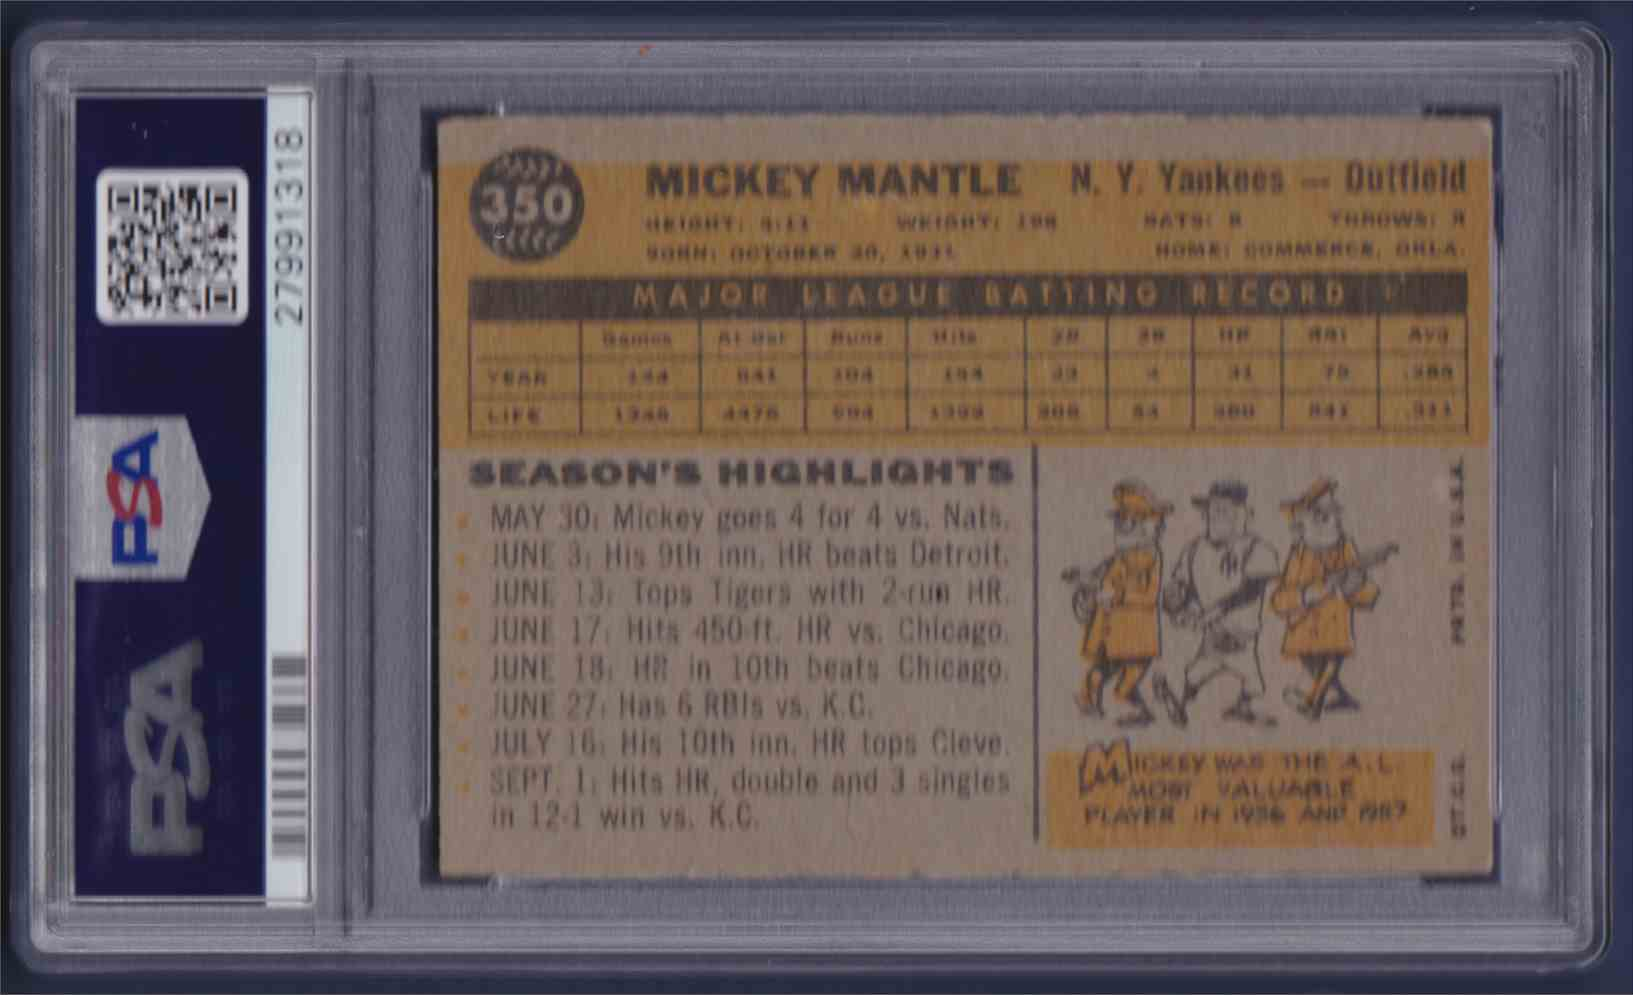 1960 Topps Mickey Mantle #350 card back image